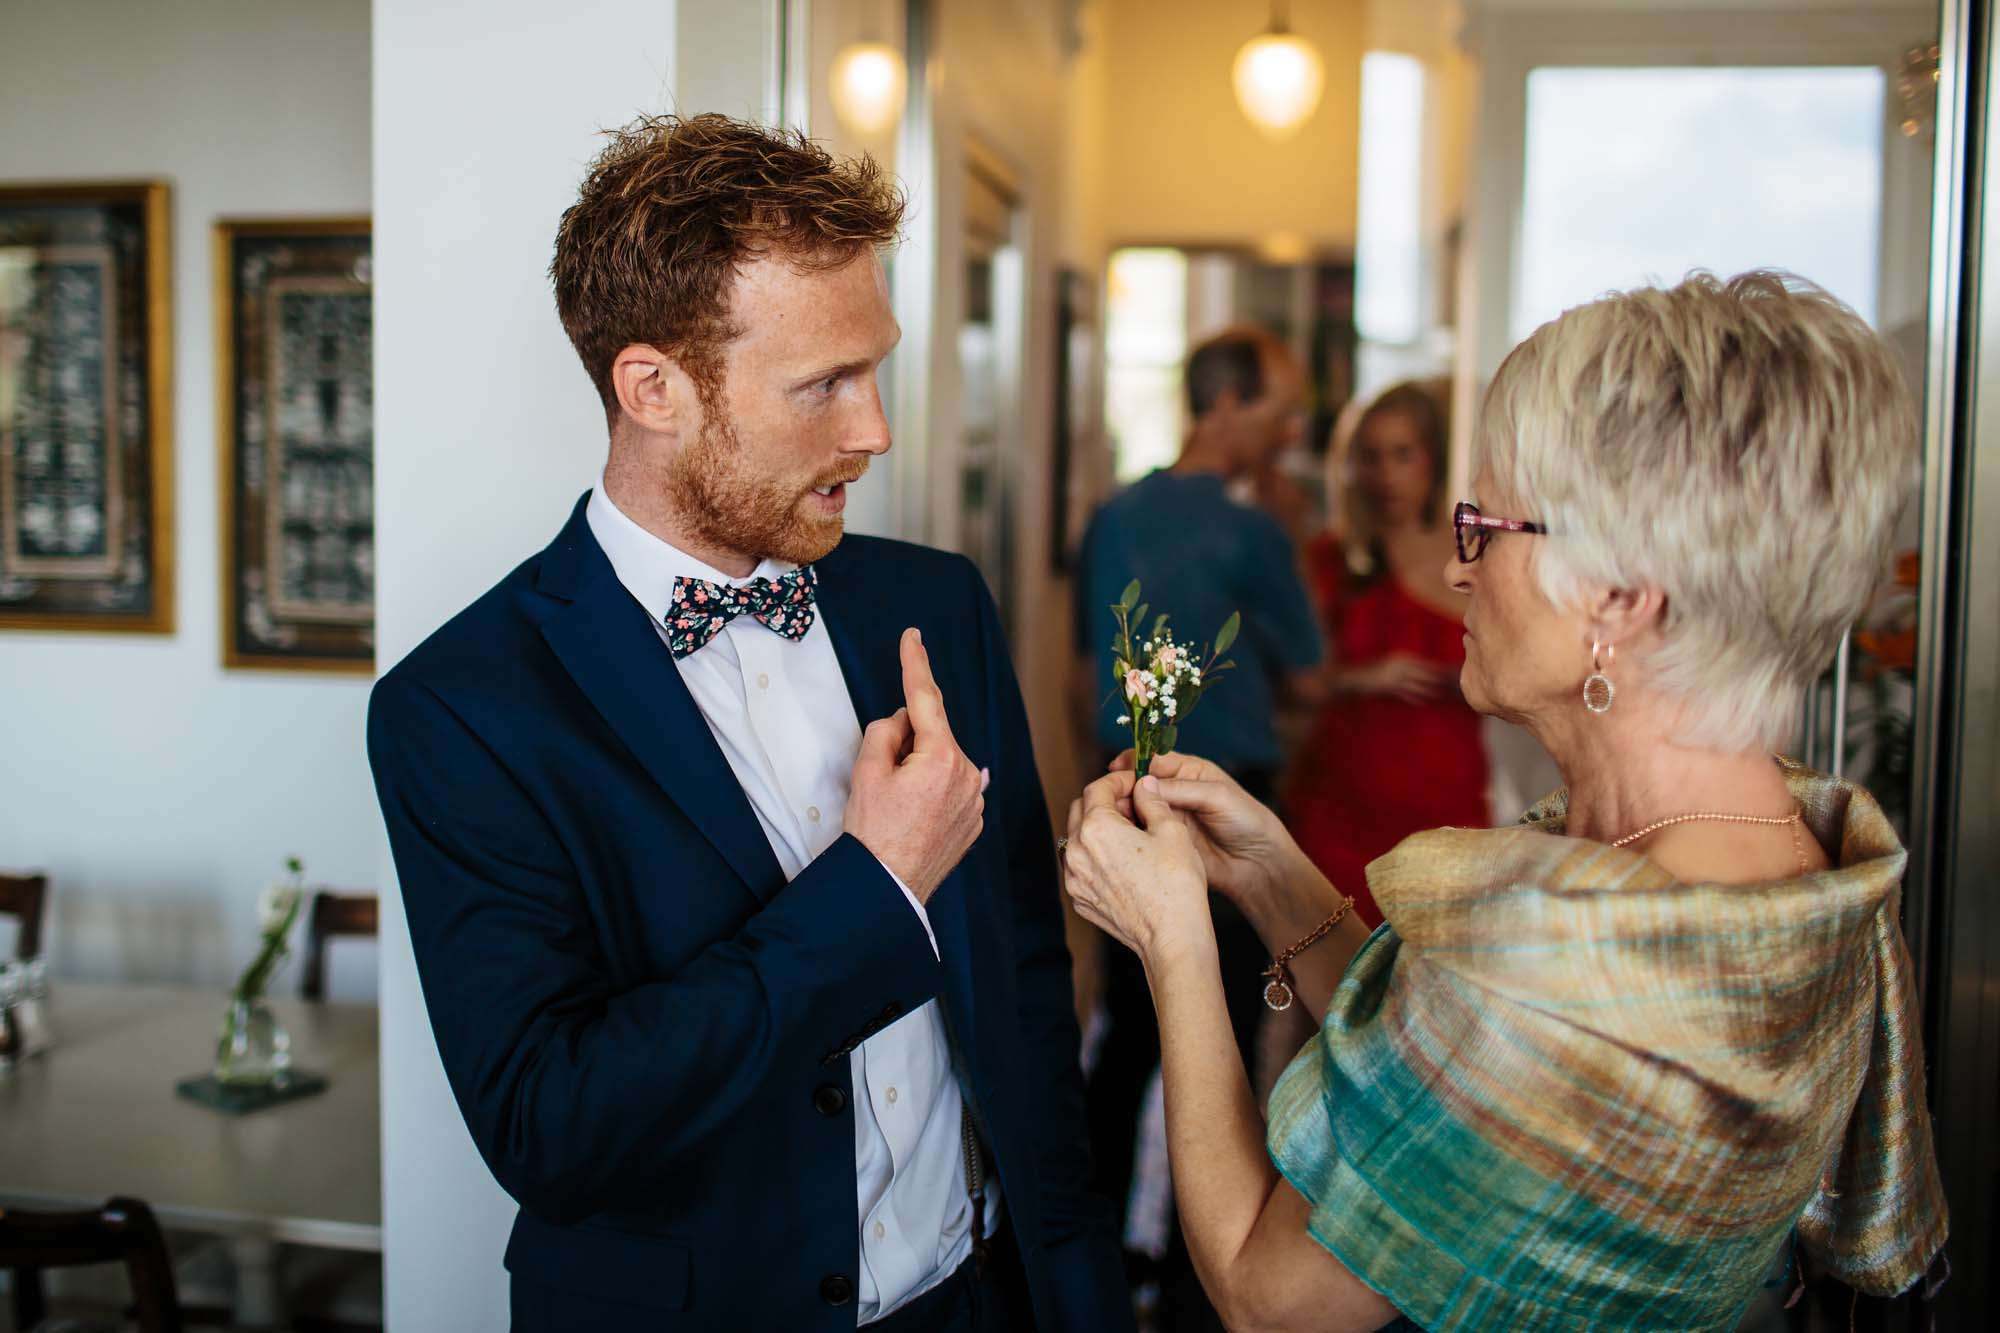 Grooms mum puts his buttonhole flower in